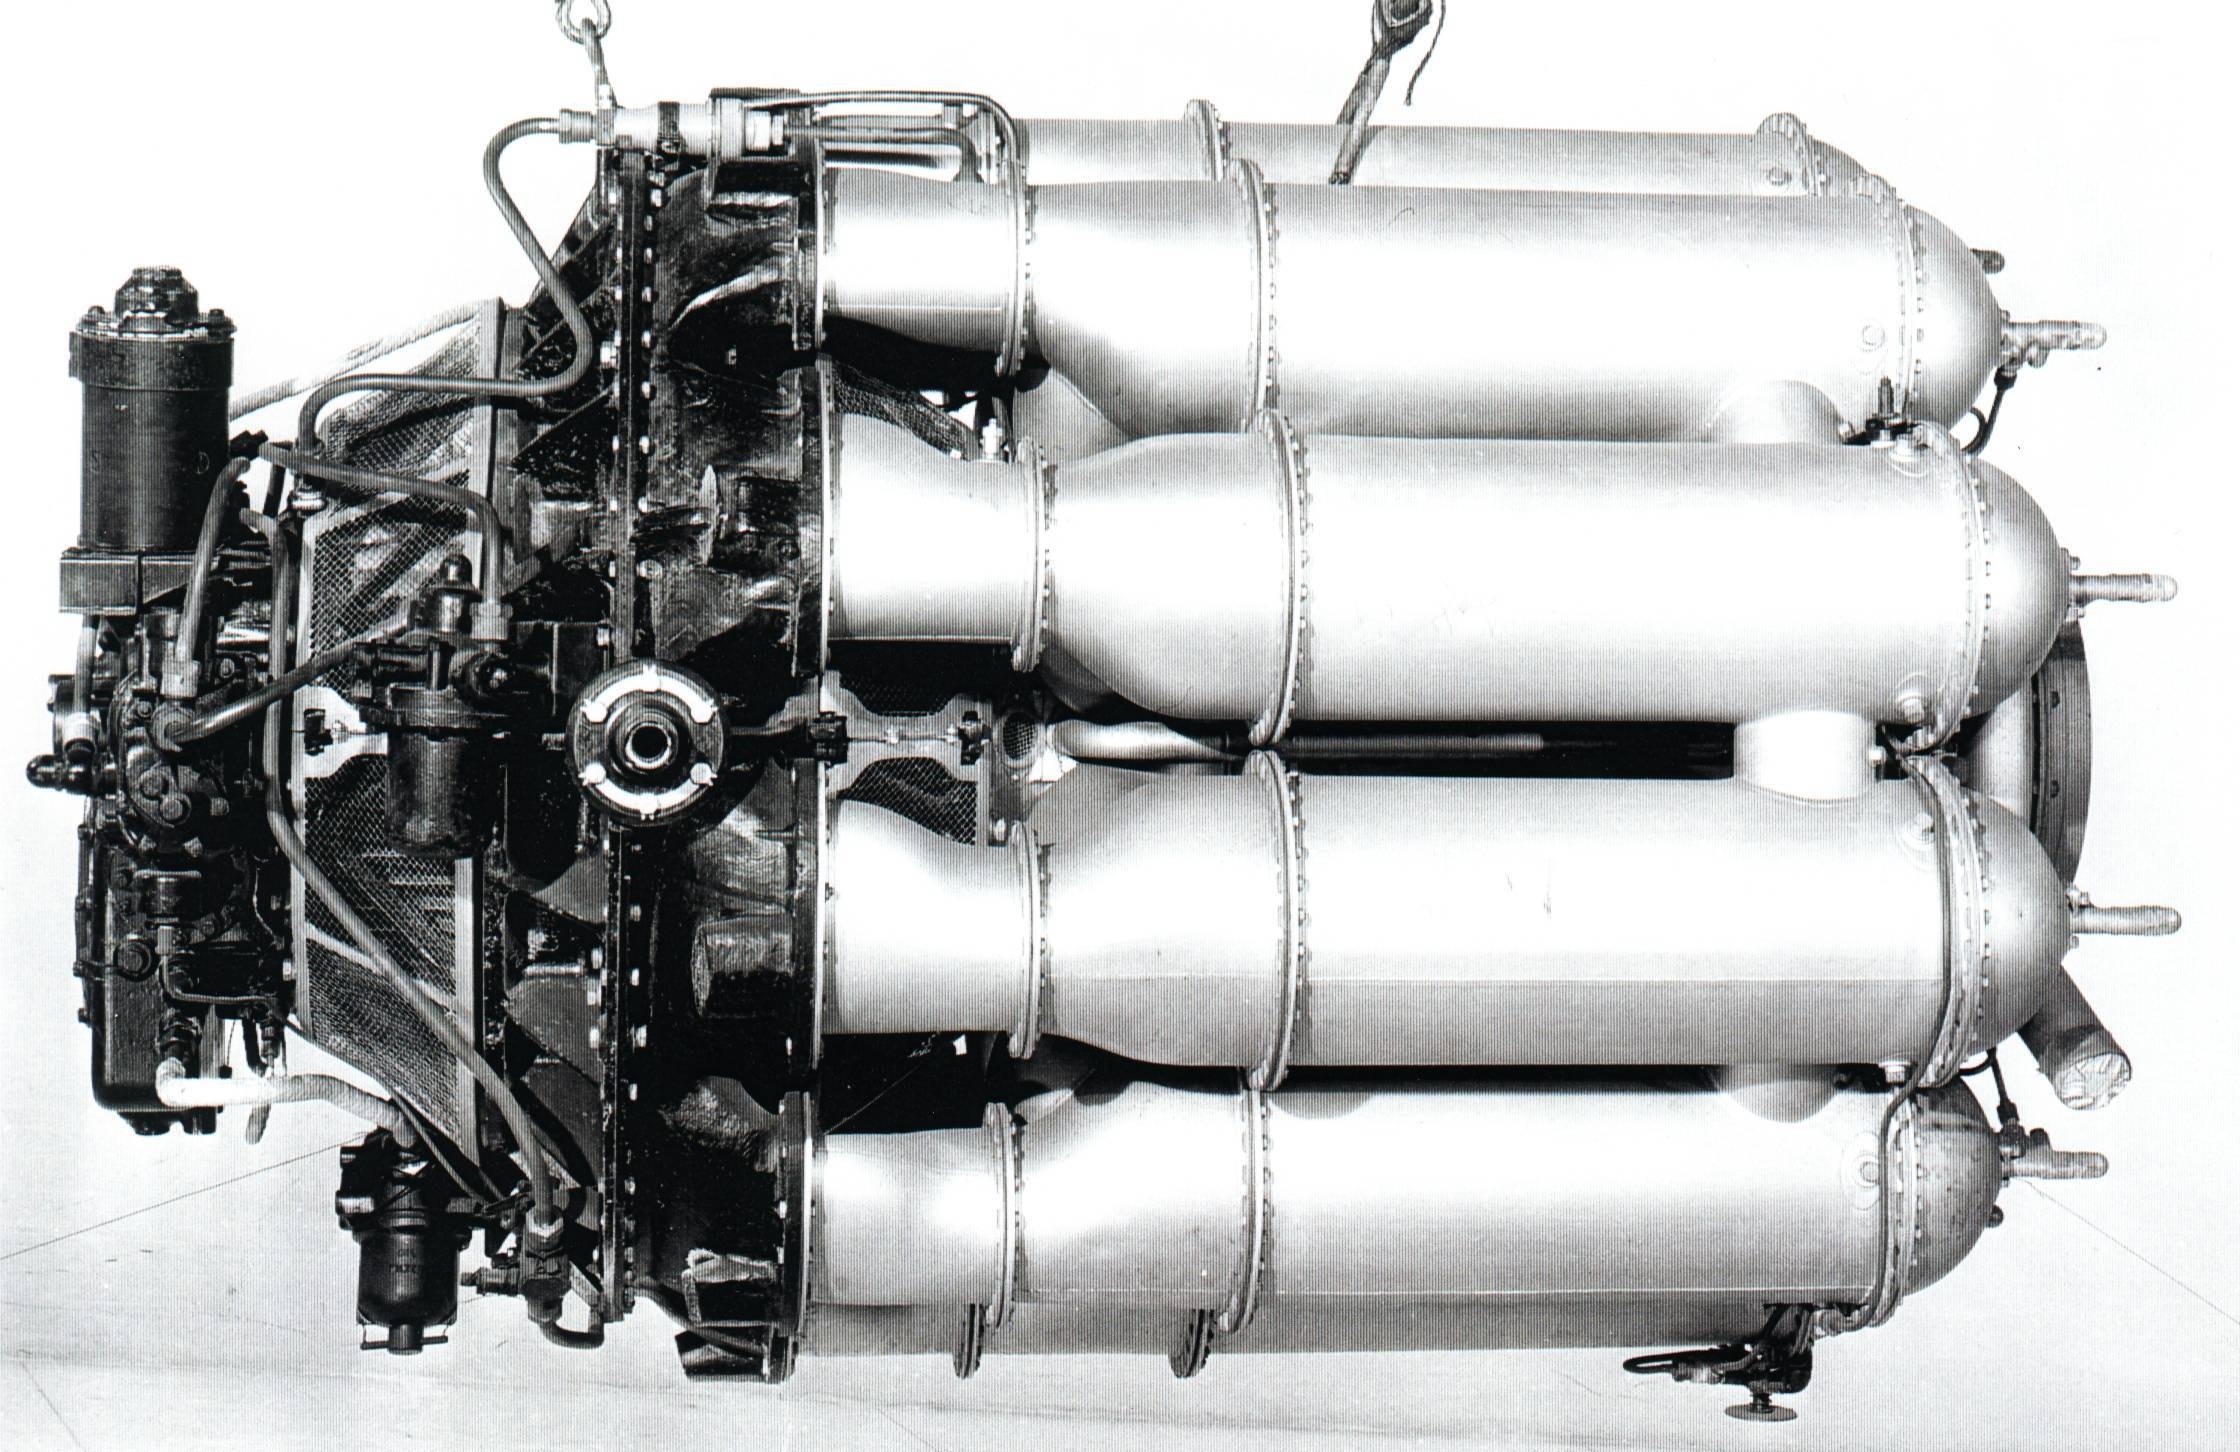 W2bwellandg rolls royce w2b23 welland turbojet that powered the gloster f940 dg202g test bed and the early gloster meteor mk1 and mk3 raf fighters in 1944 pooptronica Gallery